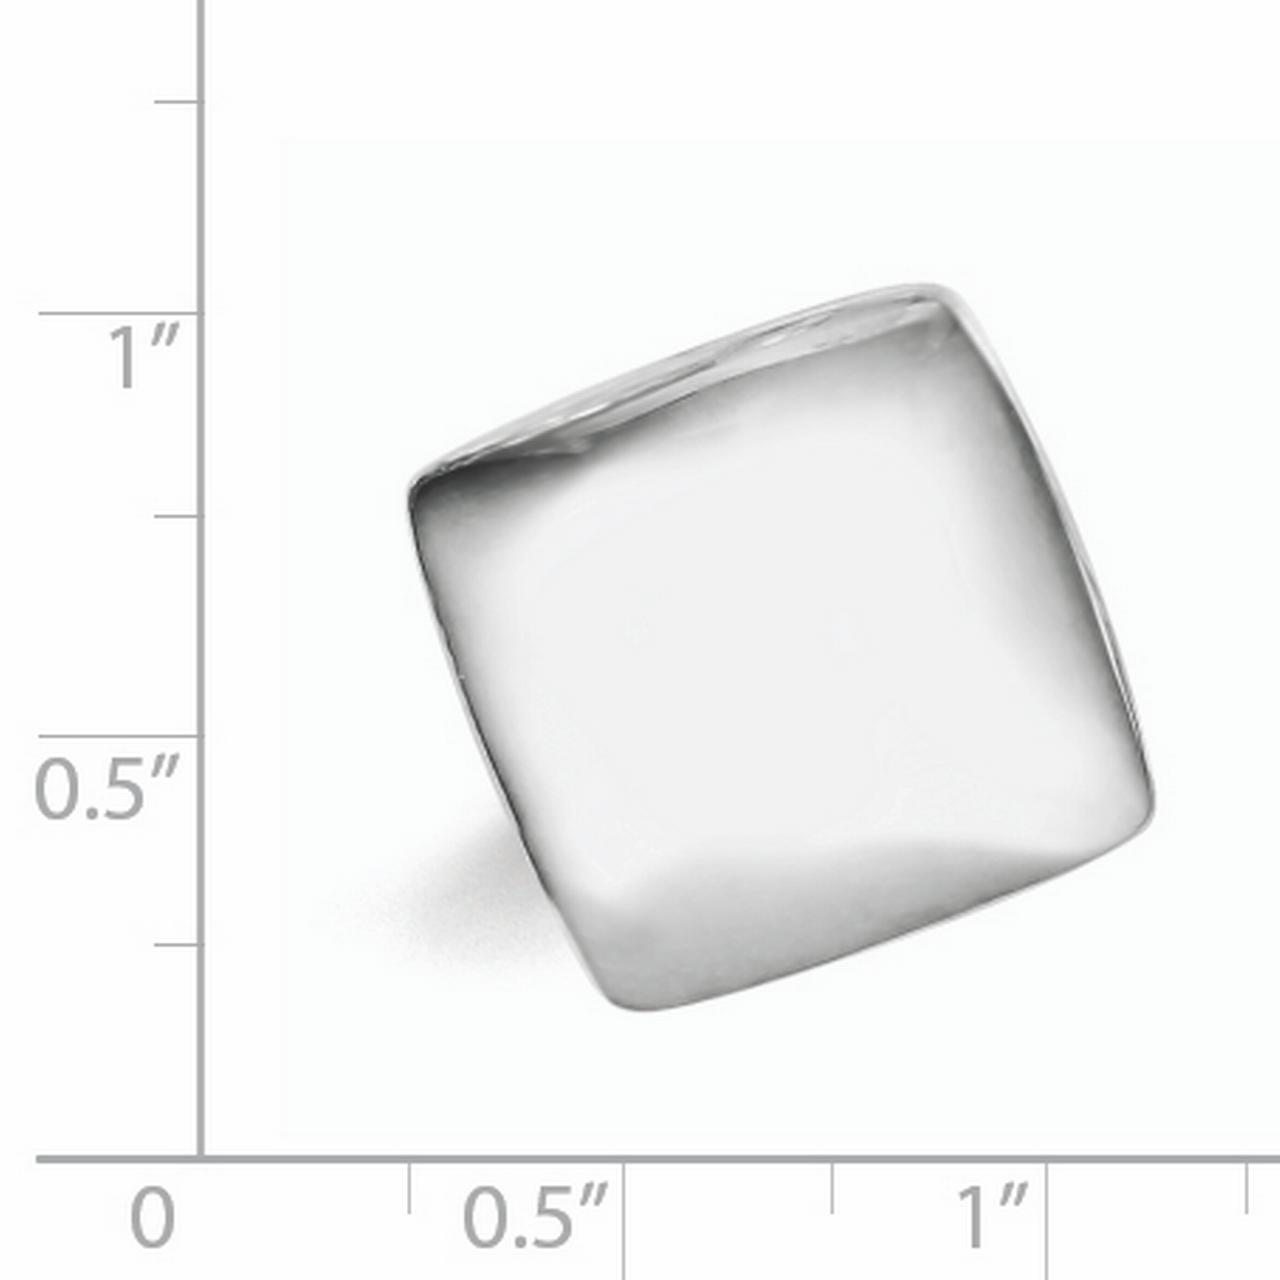 925 Sterling Silver Solid Band Ring Size 8.00 Fine Jewelry Gifts For Women For Her - image 1 de 2